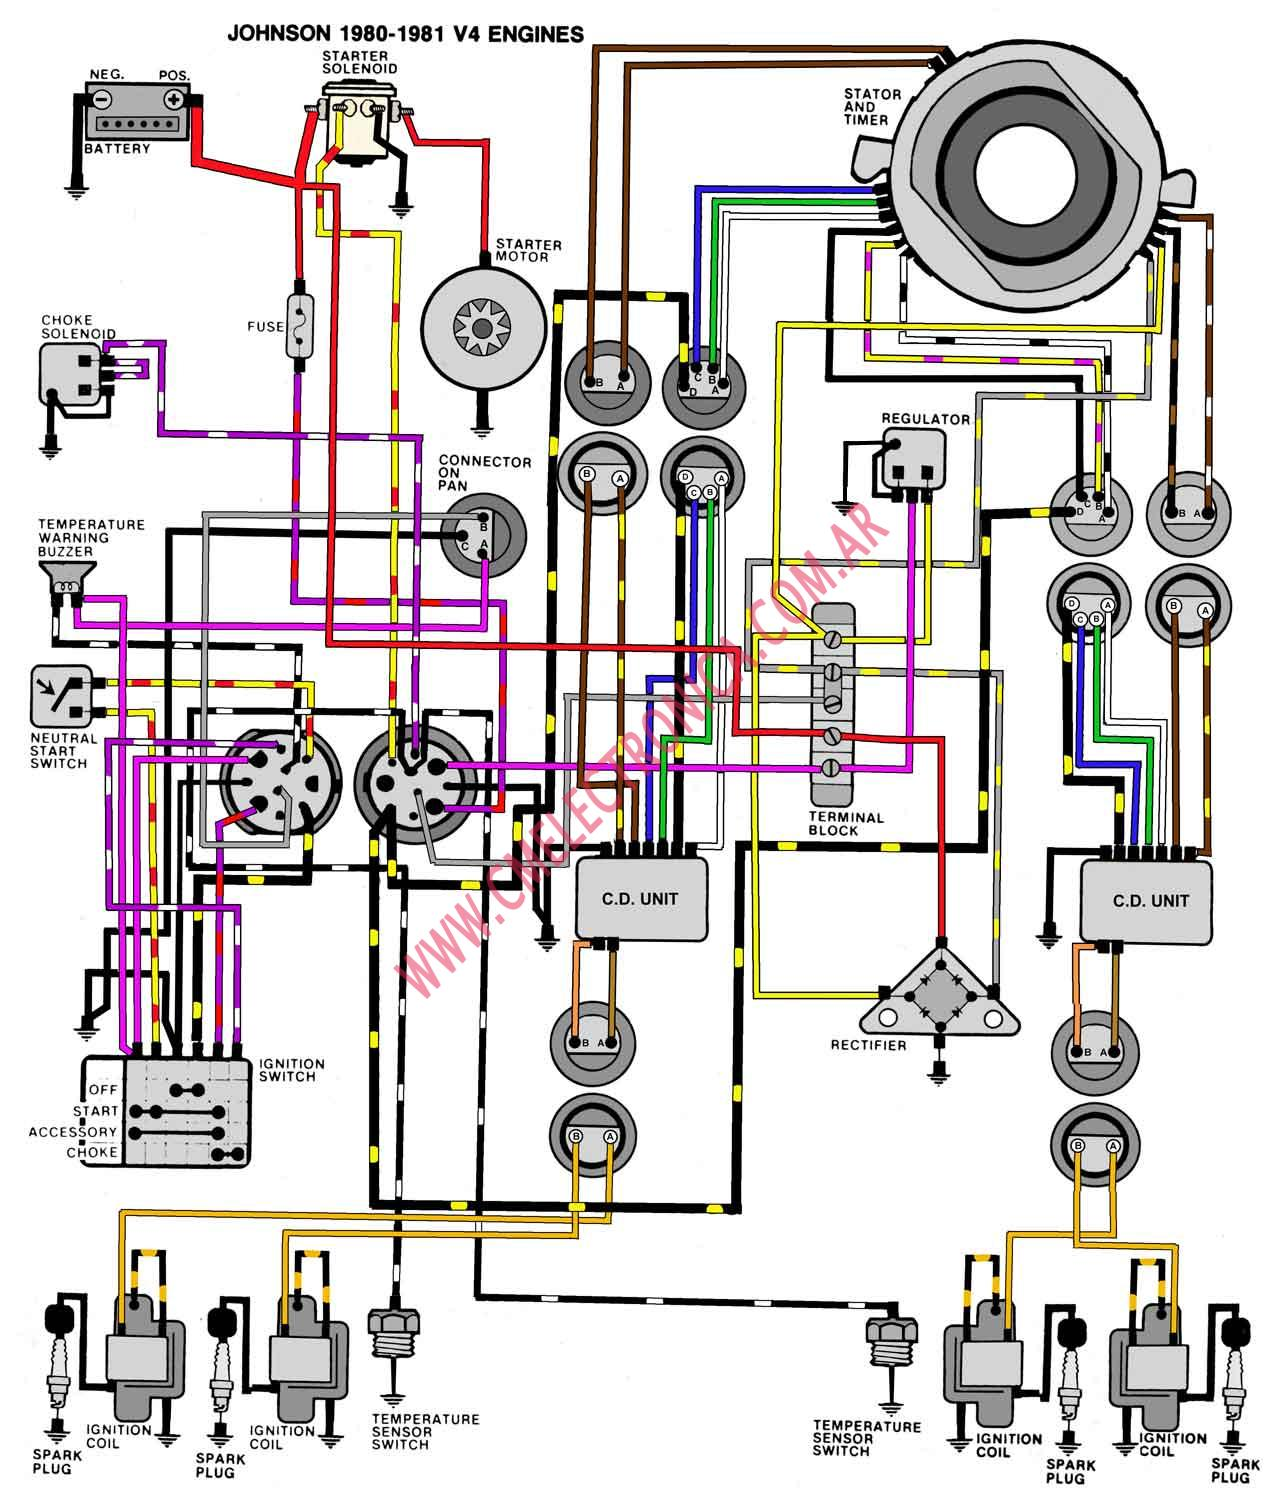 evinrude_johnson 80_81_v4 mercury outboard wiring diagrams mastertech marin readingrat net 1992 johnson 40 hp outboard wiring diagram at soozxer.org